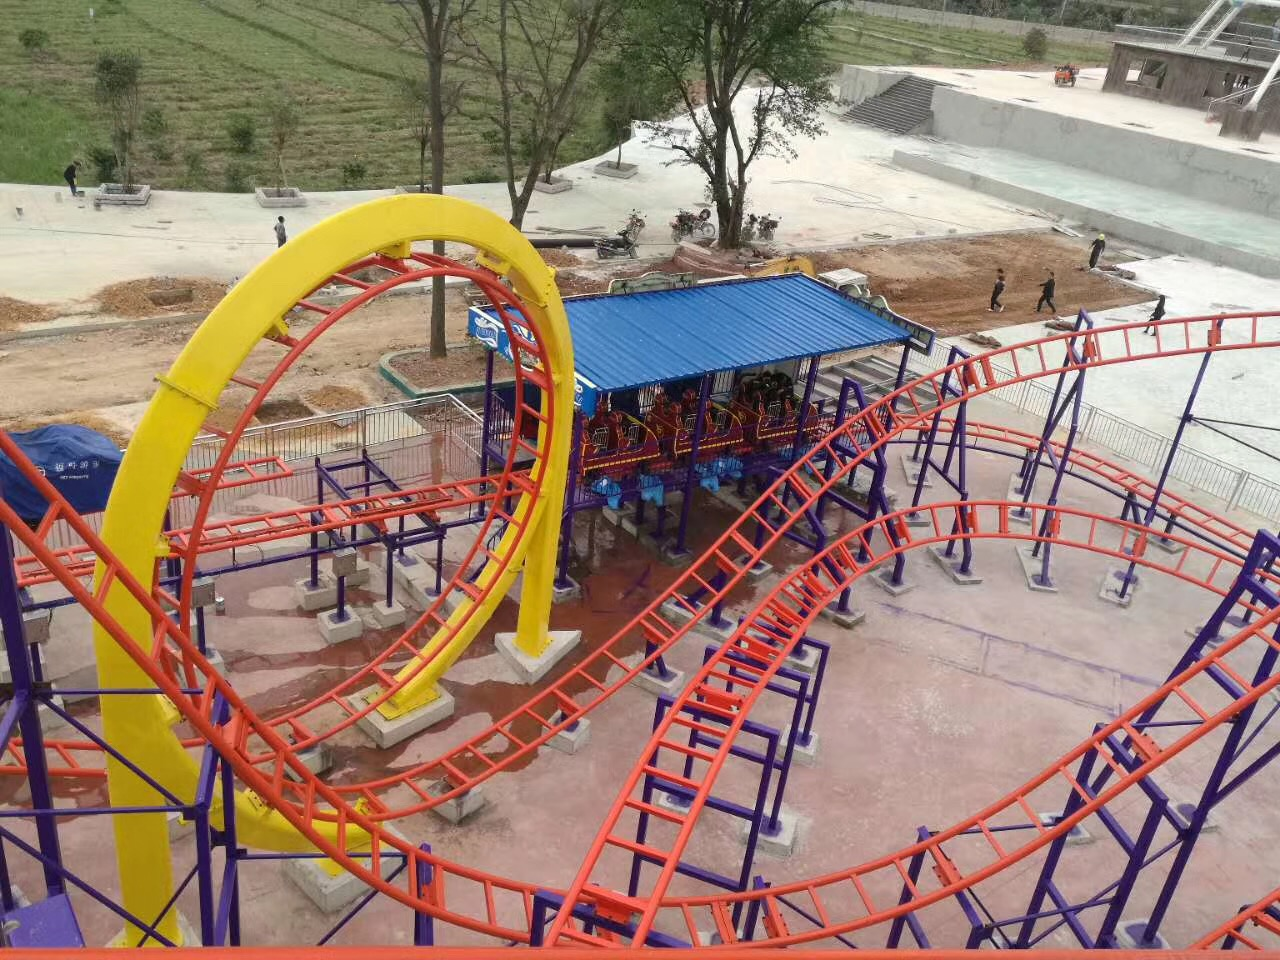 Newest amusement outdoor park equipment roller coaster , amusement ride roller coaster, roller coaster for sale